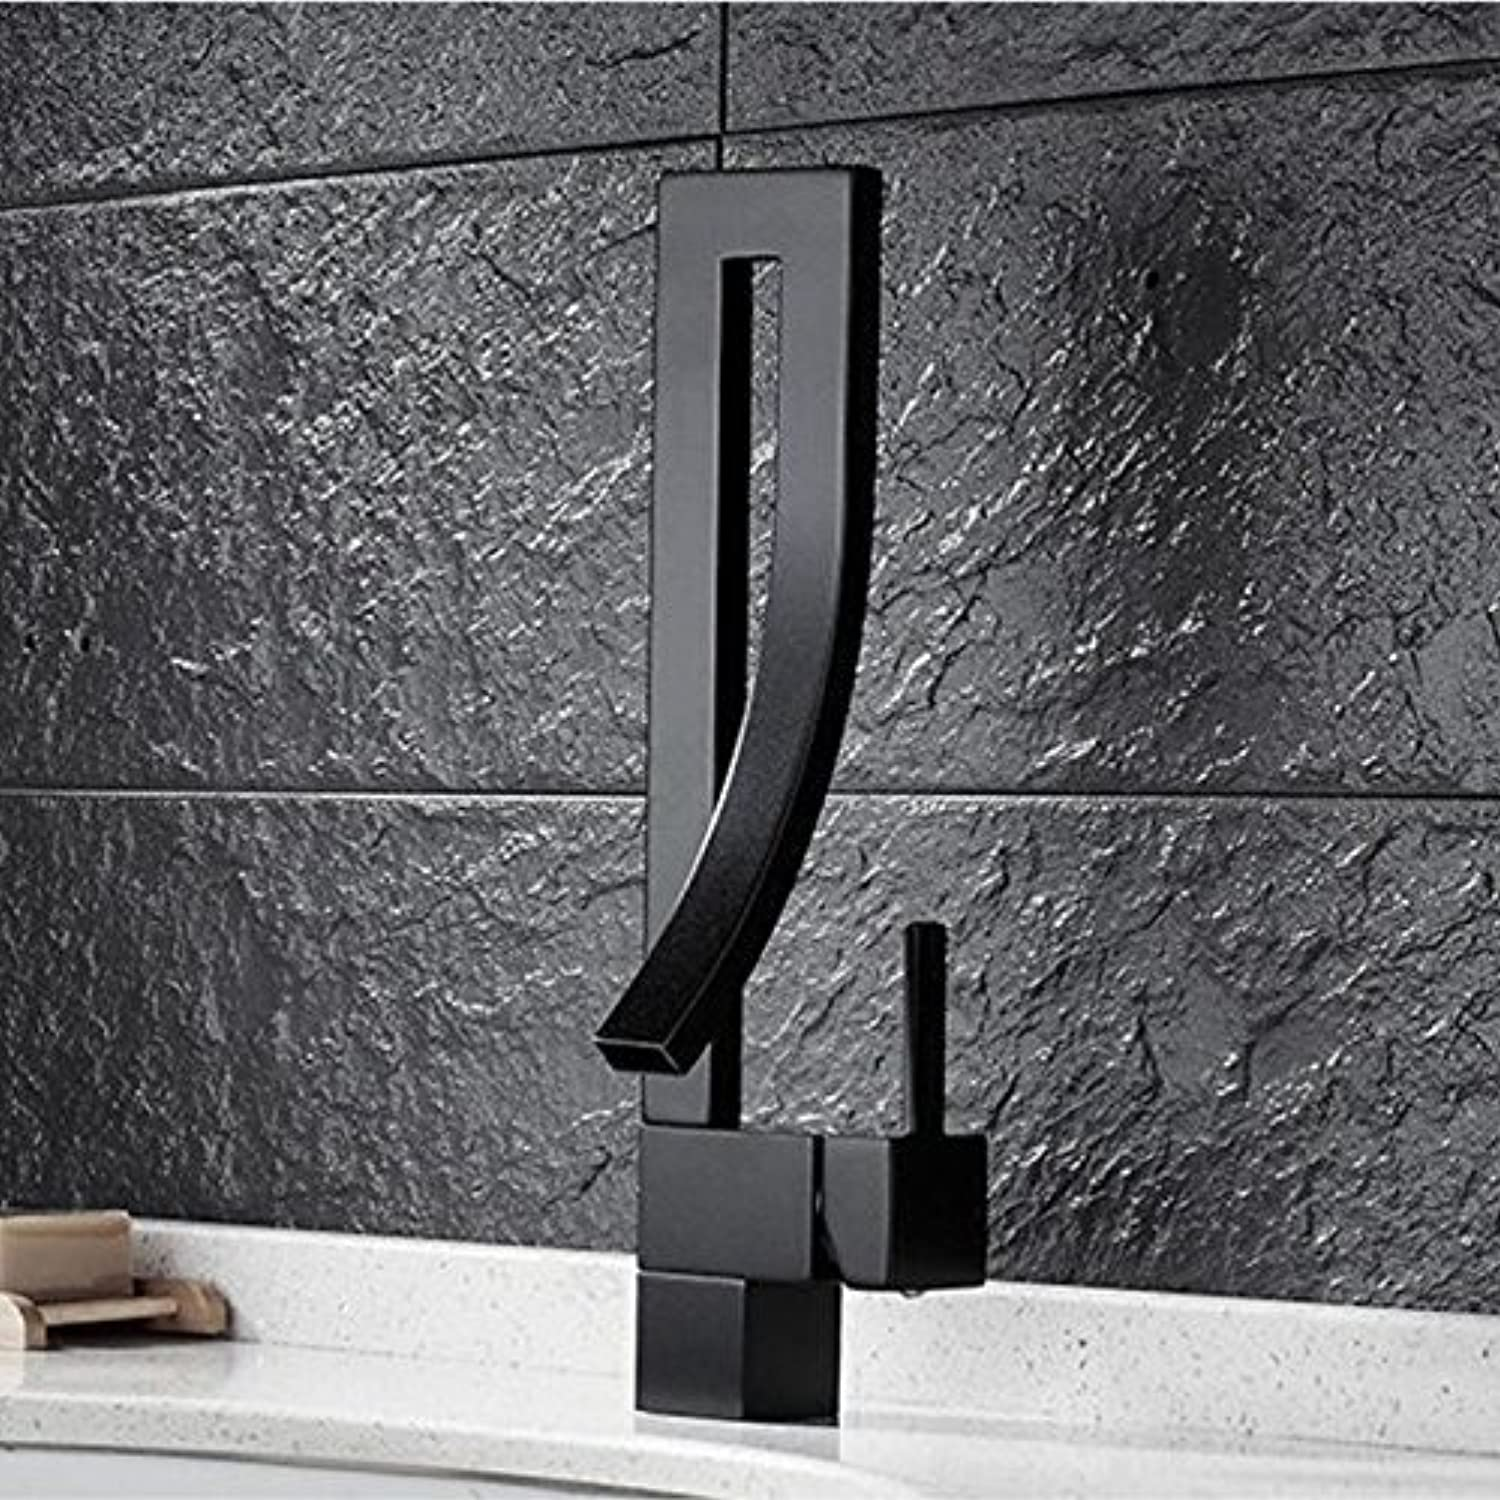 Brass Bath Rooms, Place The wash Basin Mixer wash Basin Mixer Mounted Bridge, hot or Cold wash Basin Mixer tap, Black